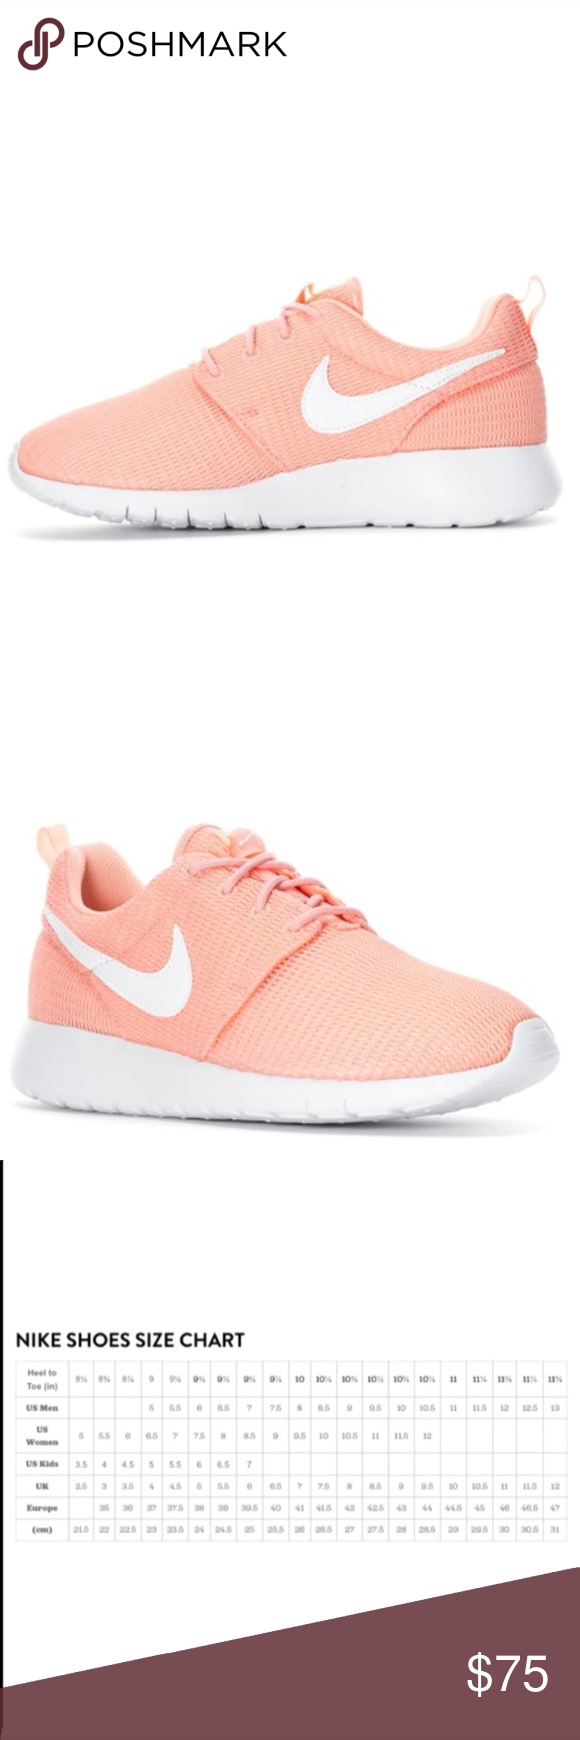 a962845ae3b5 NIKE ROSHE WOMENS SHOES SIZE 8.5 NEW Comes without box. Shoes are a youth  size